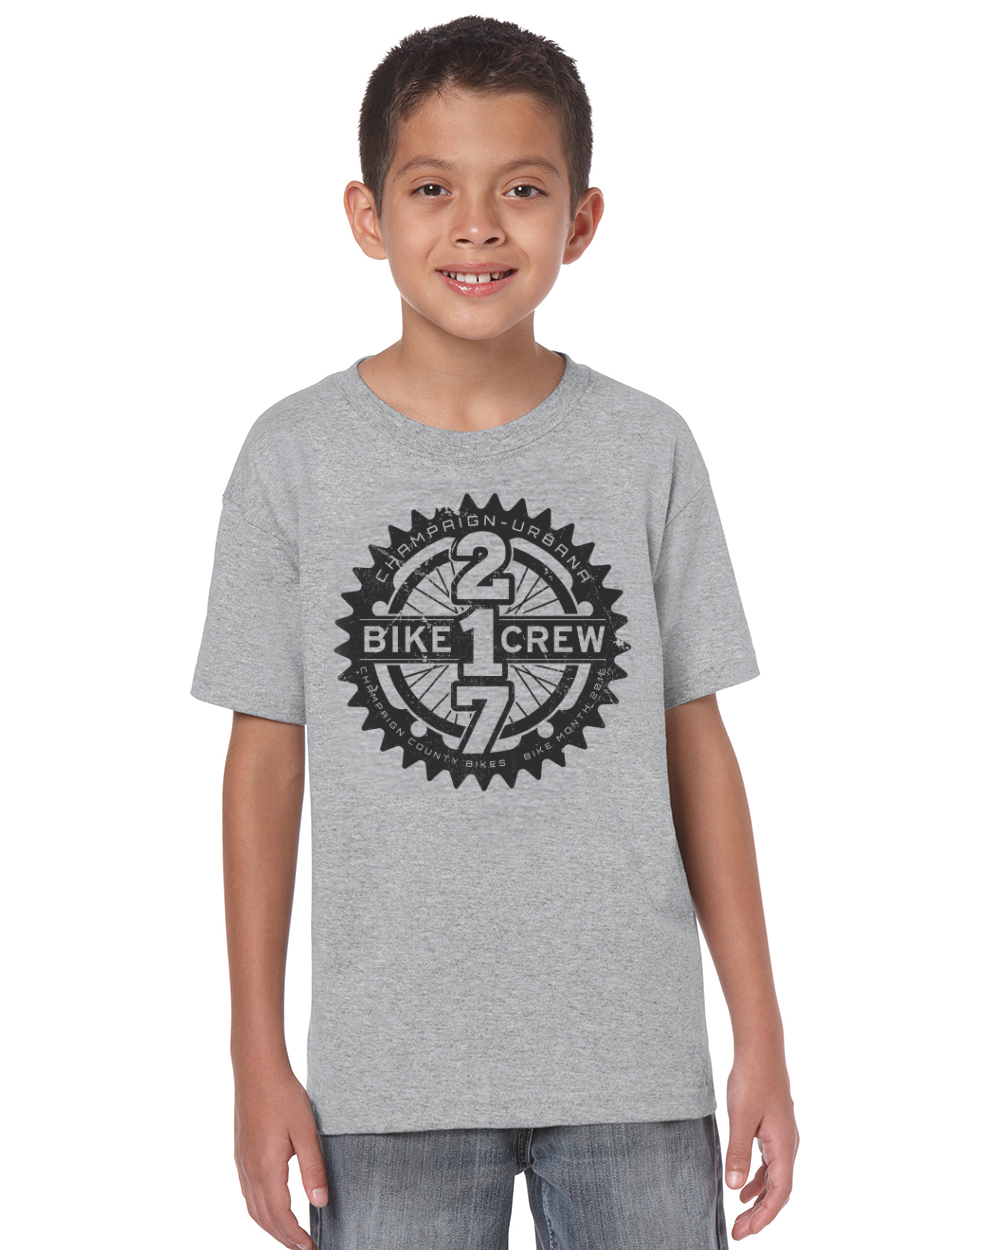 2016 Youth shirt